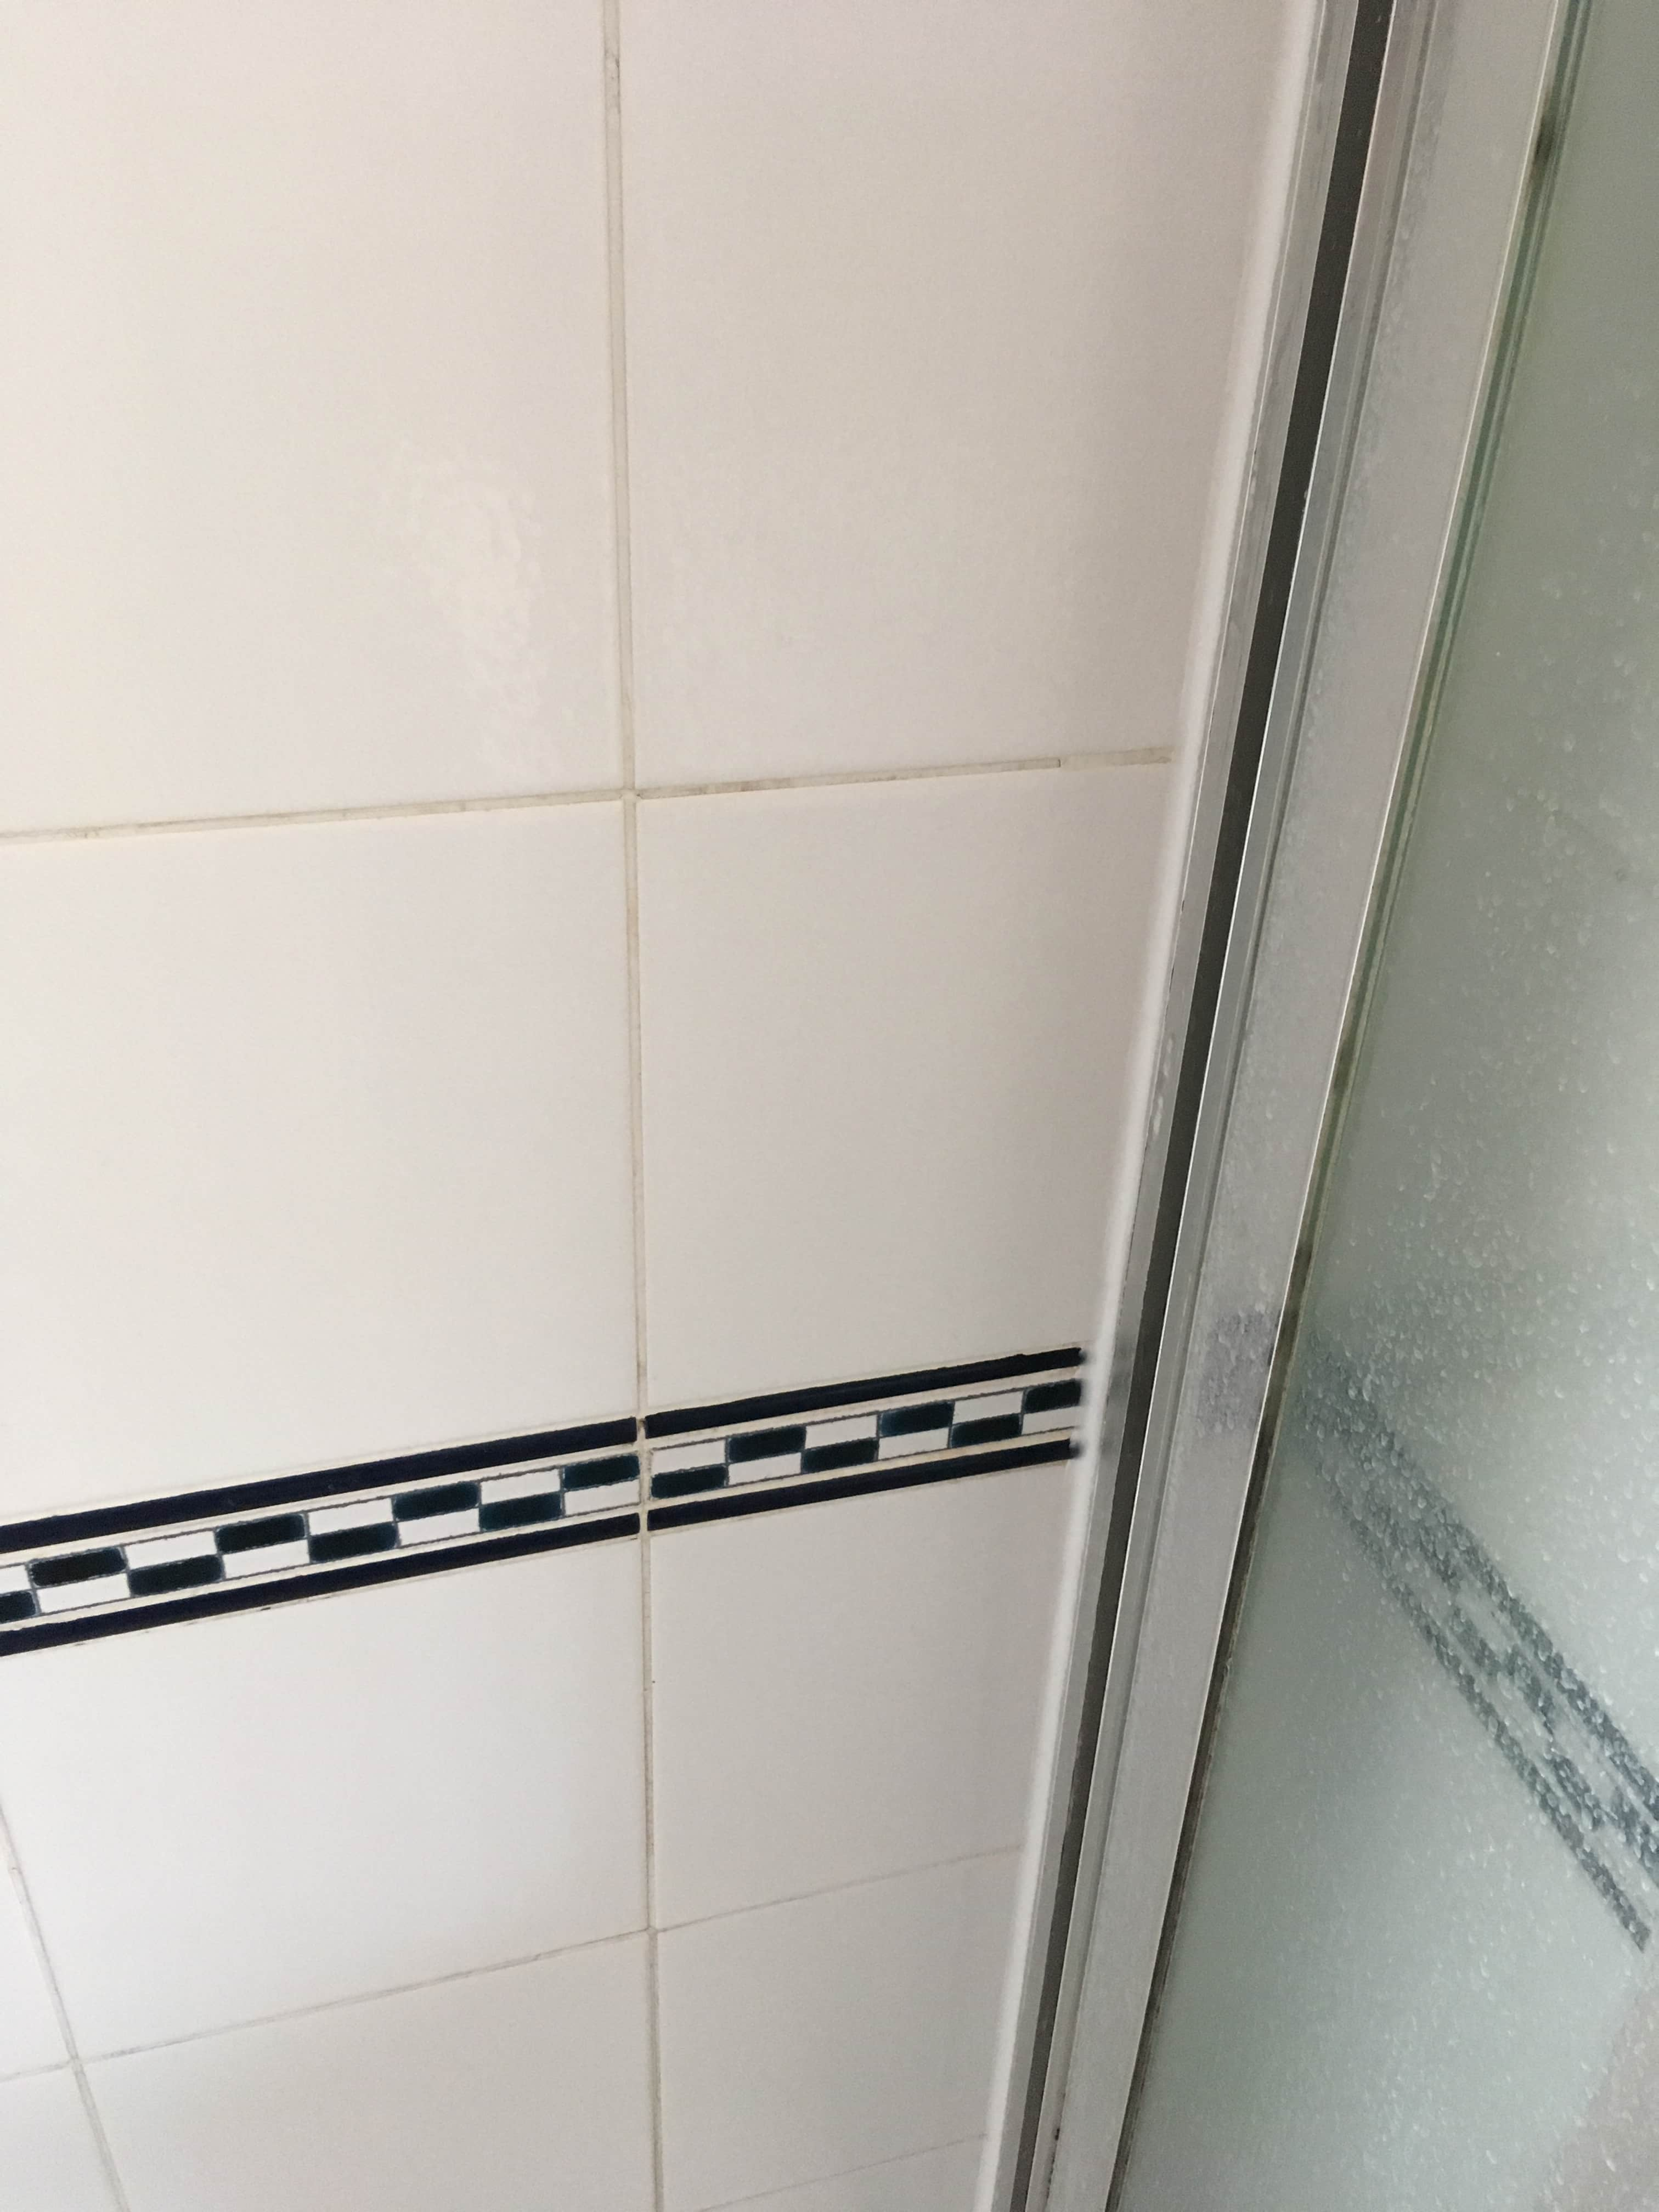 Ceramic Tiled Shower Cubicle After Cleaning Shepperton